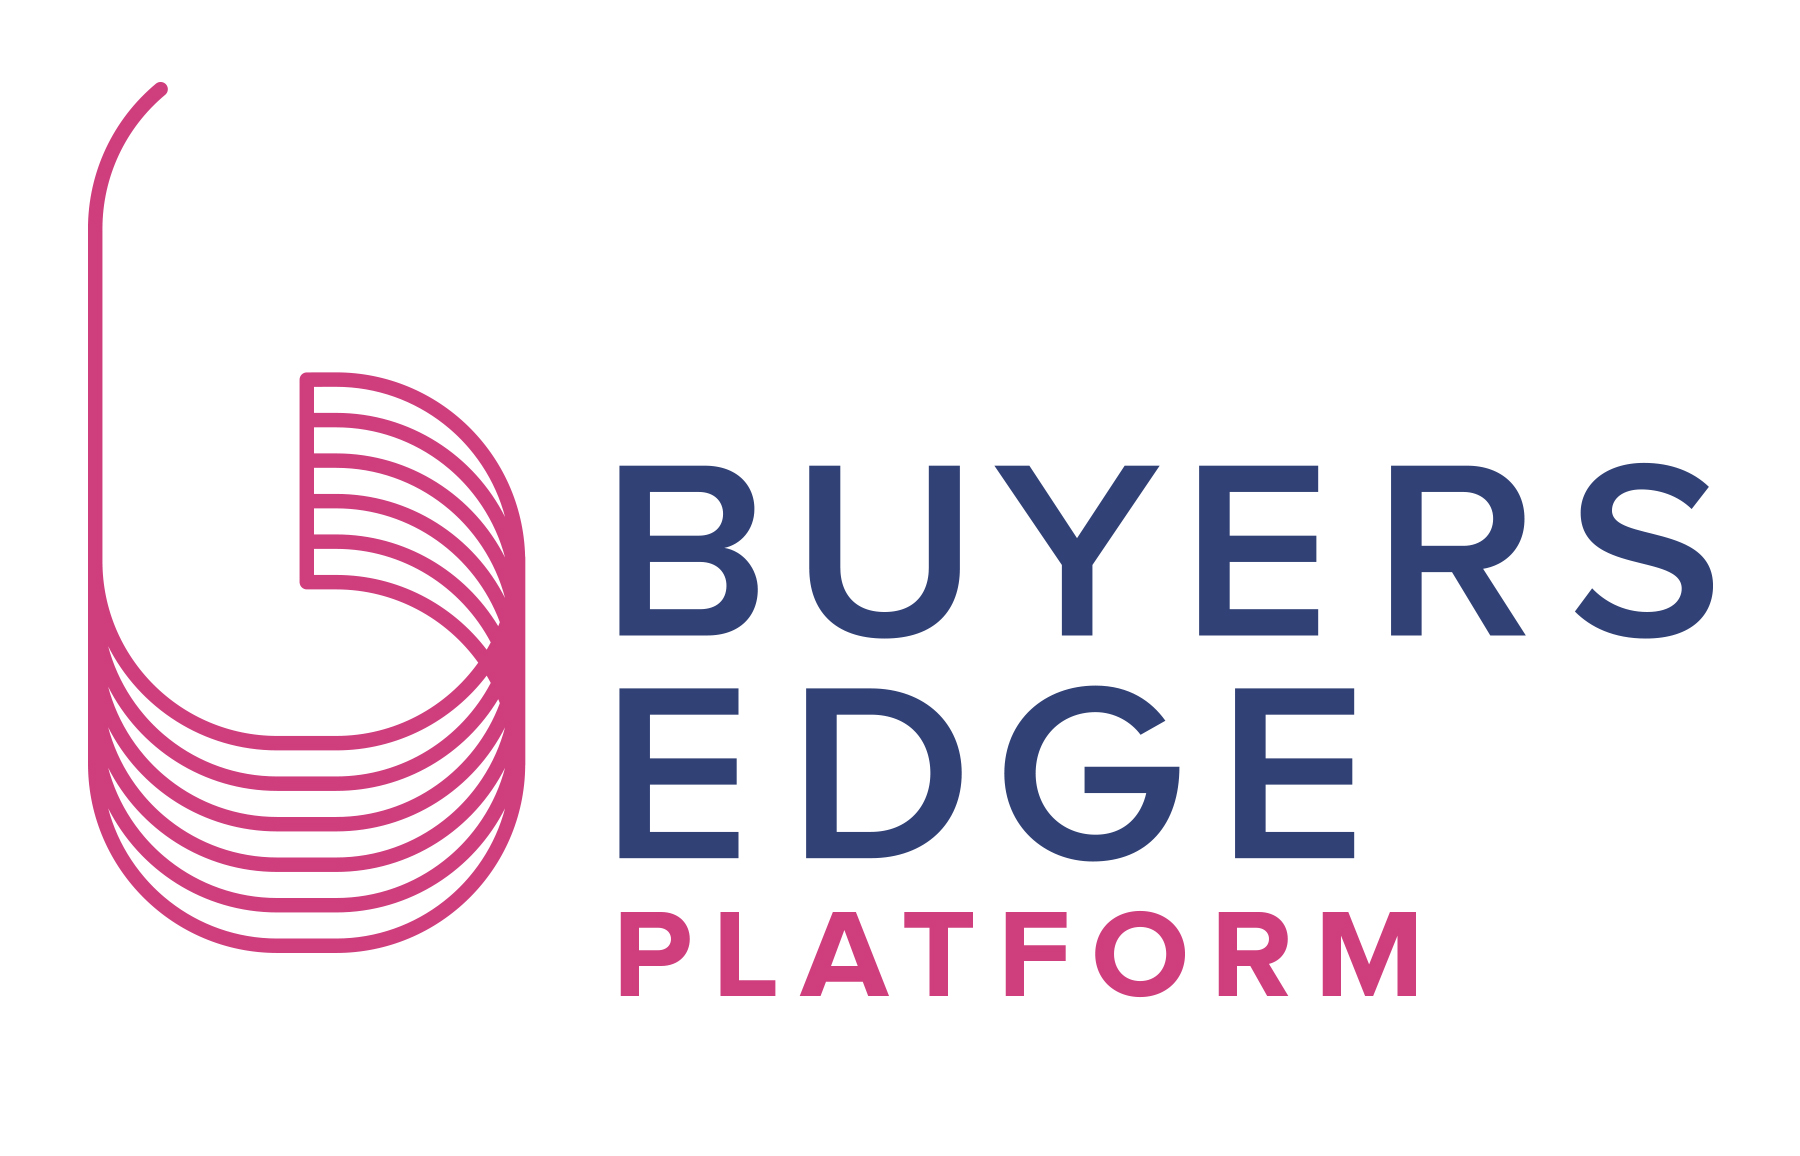 Full Buyers Edge Platform logo